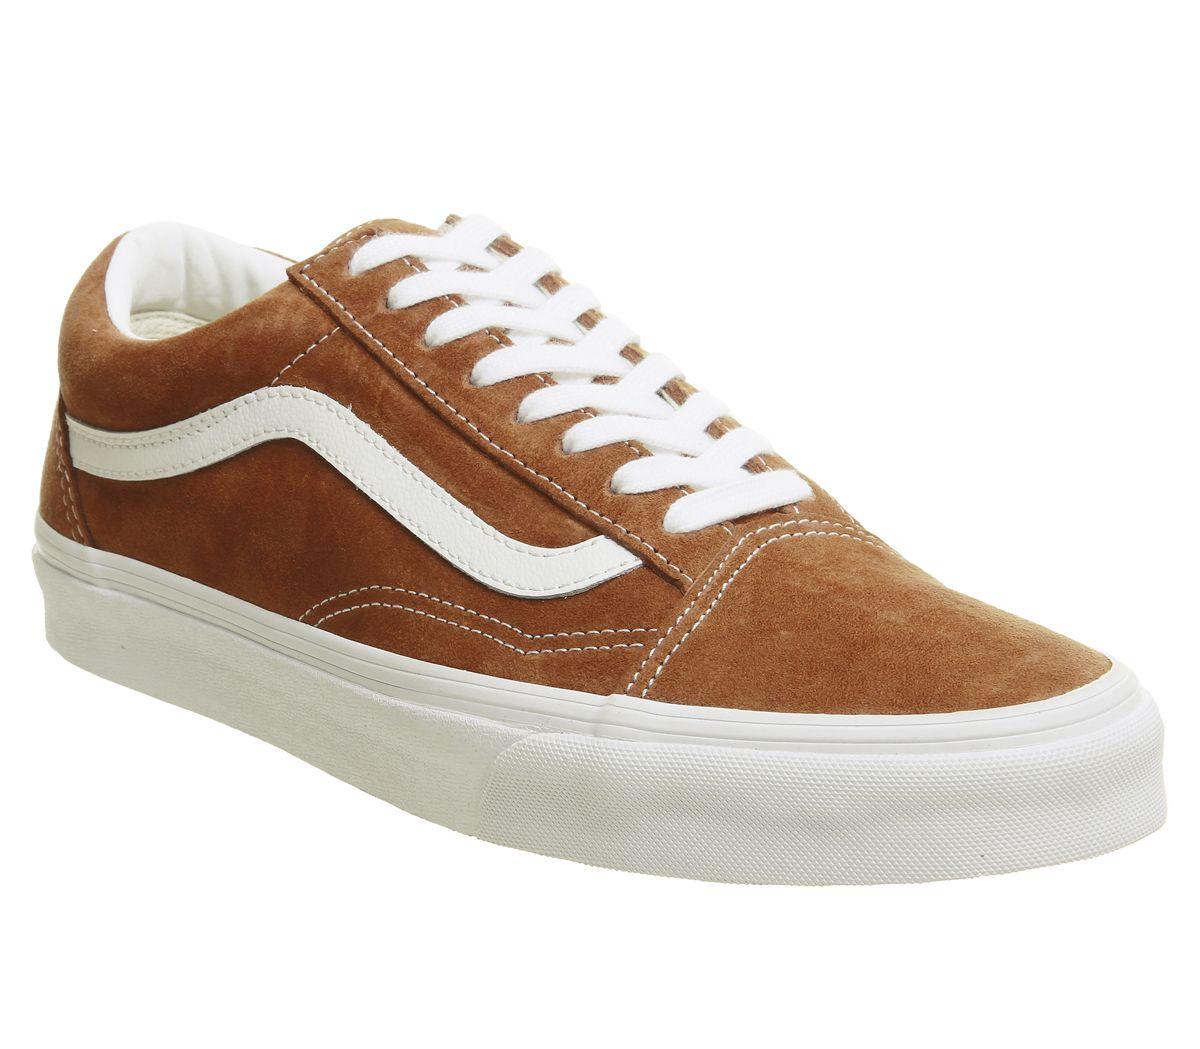 f967f08f47 Vans Old Skool Trainers Leather Brown True White - Unisex Sports